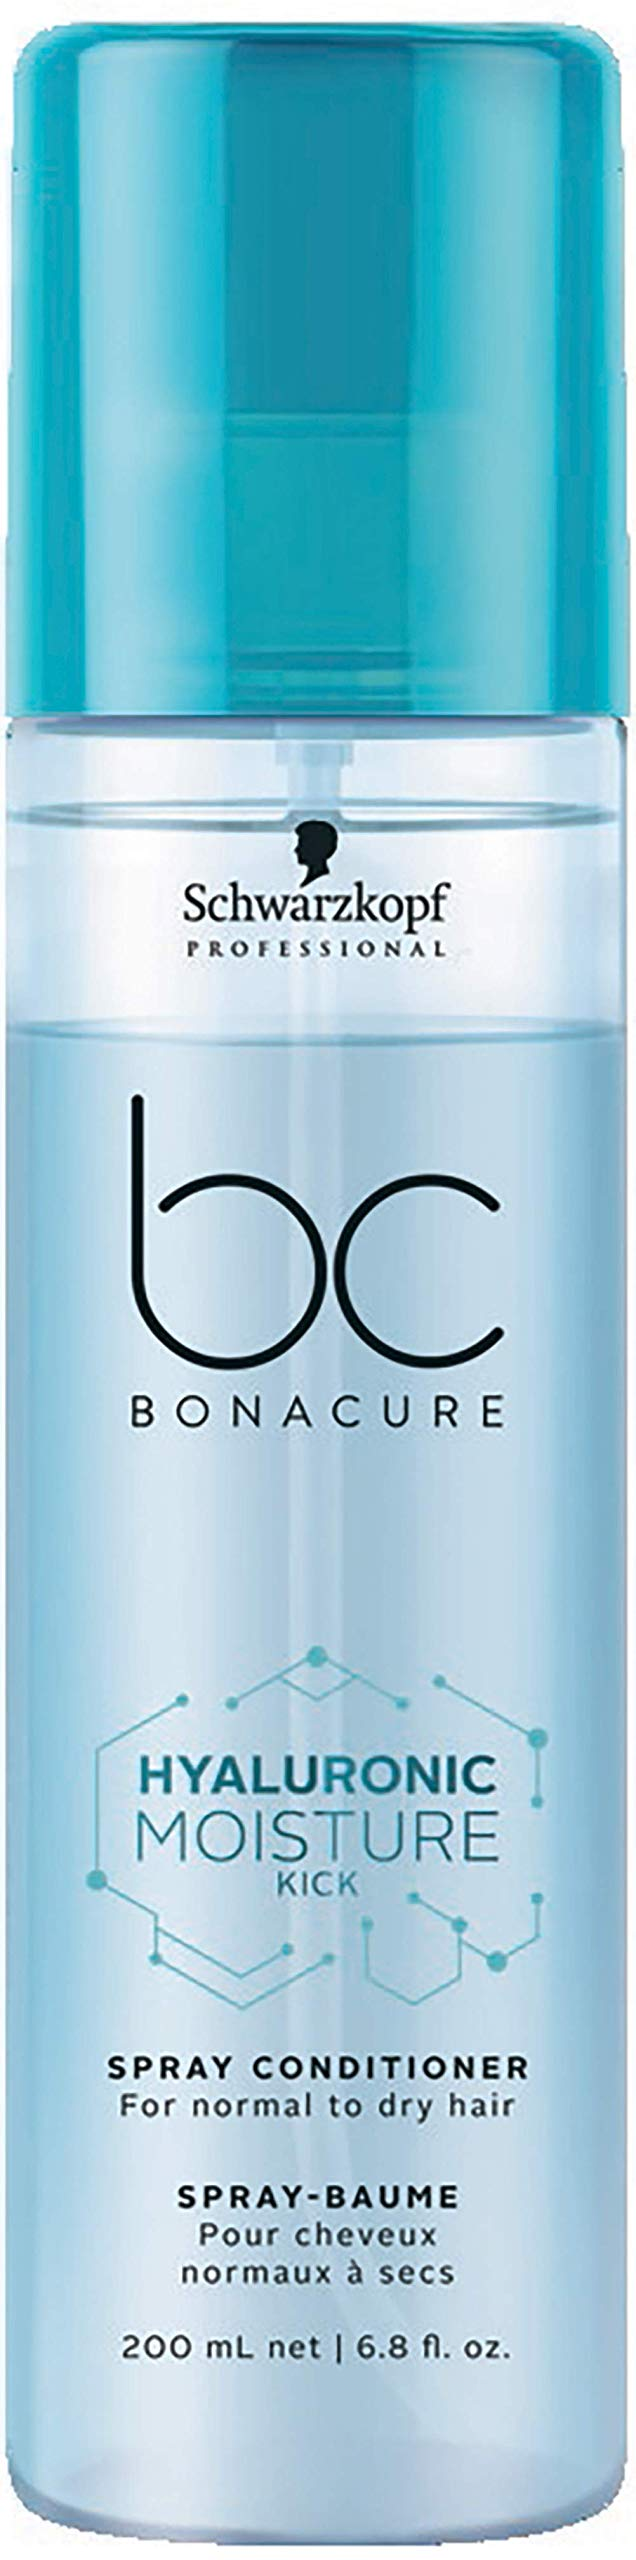 BC BONACURE Hyaluronic Moisture Kick Spray Conditioner, 6.8-Ounce